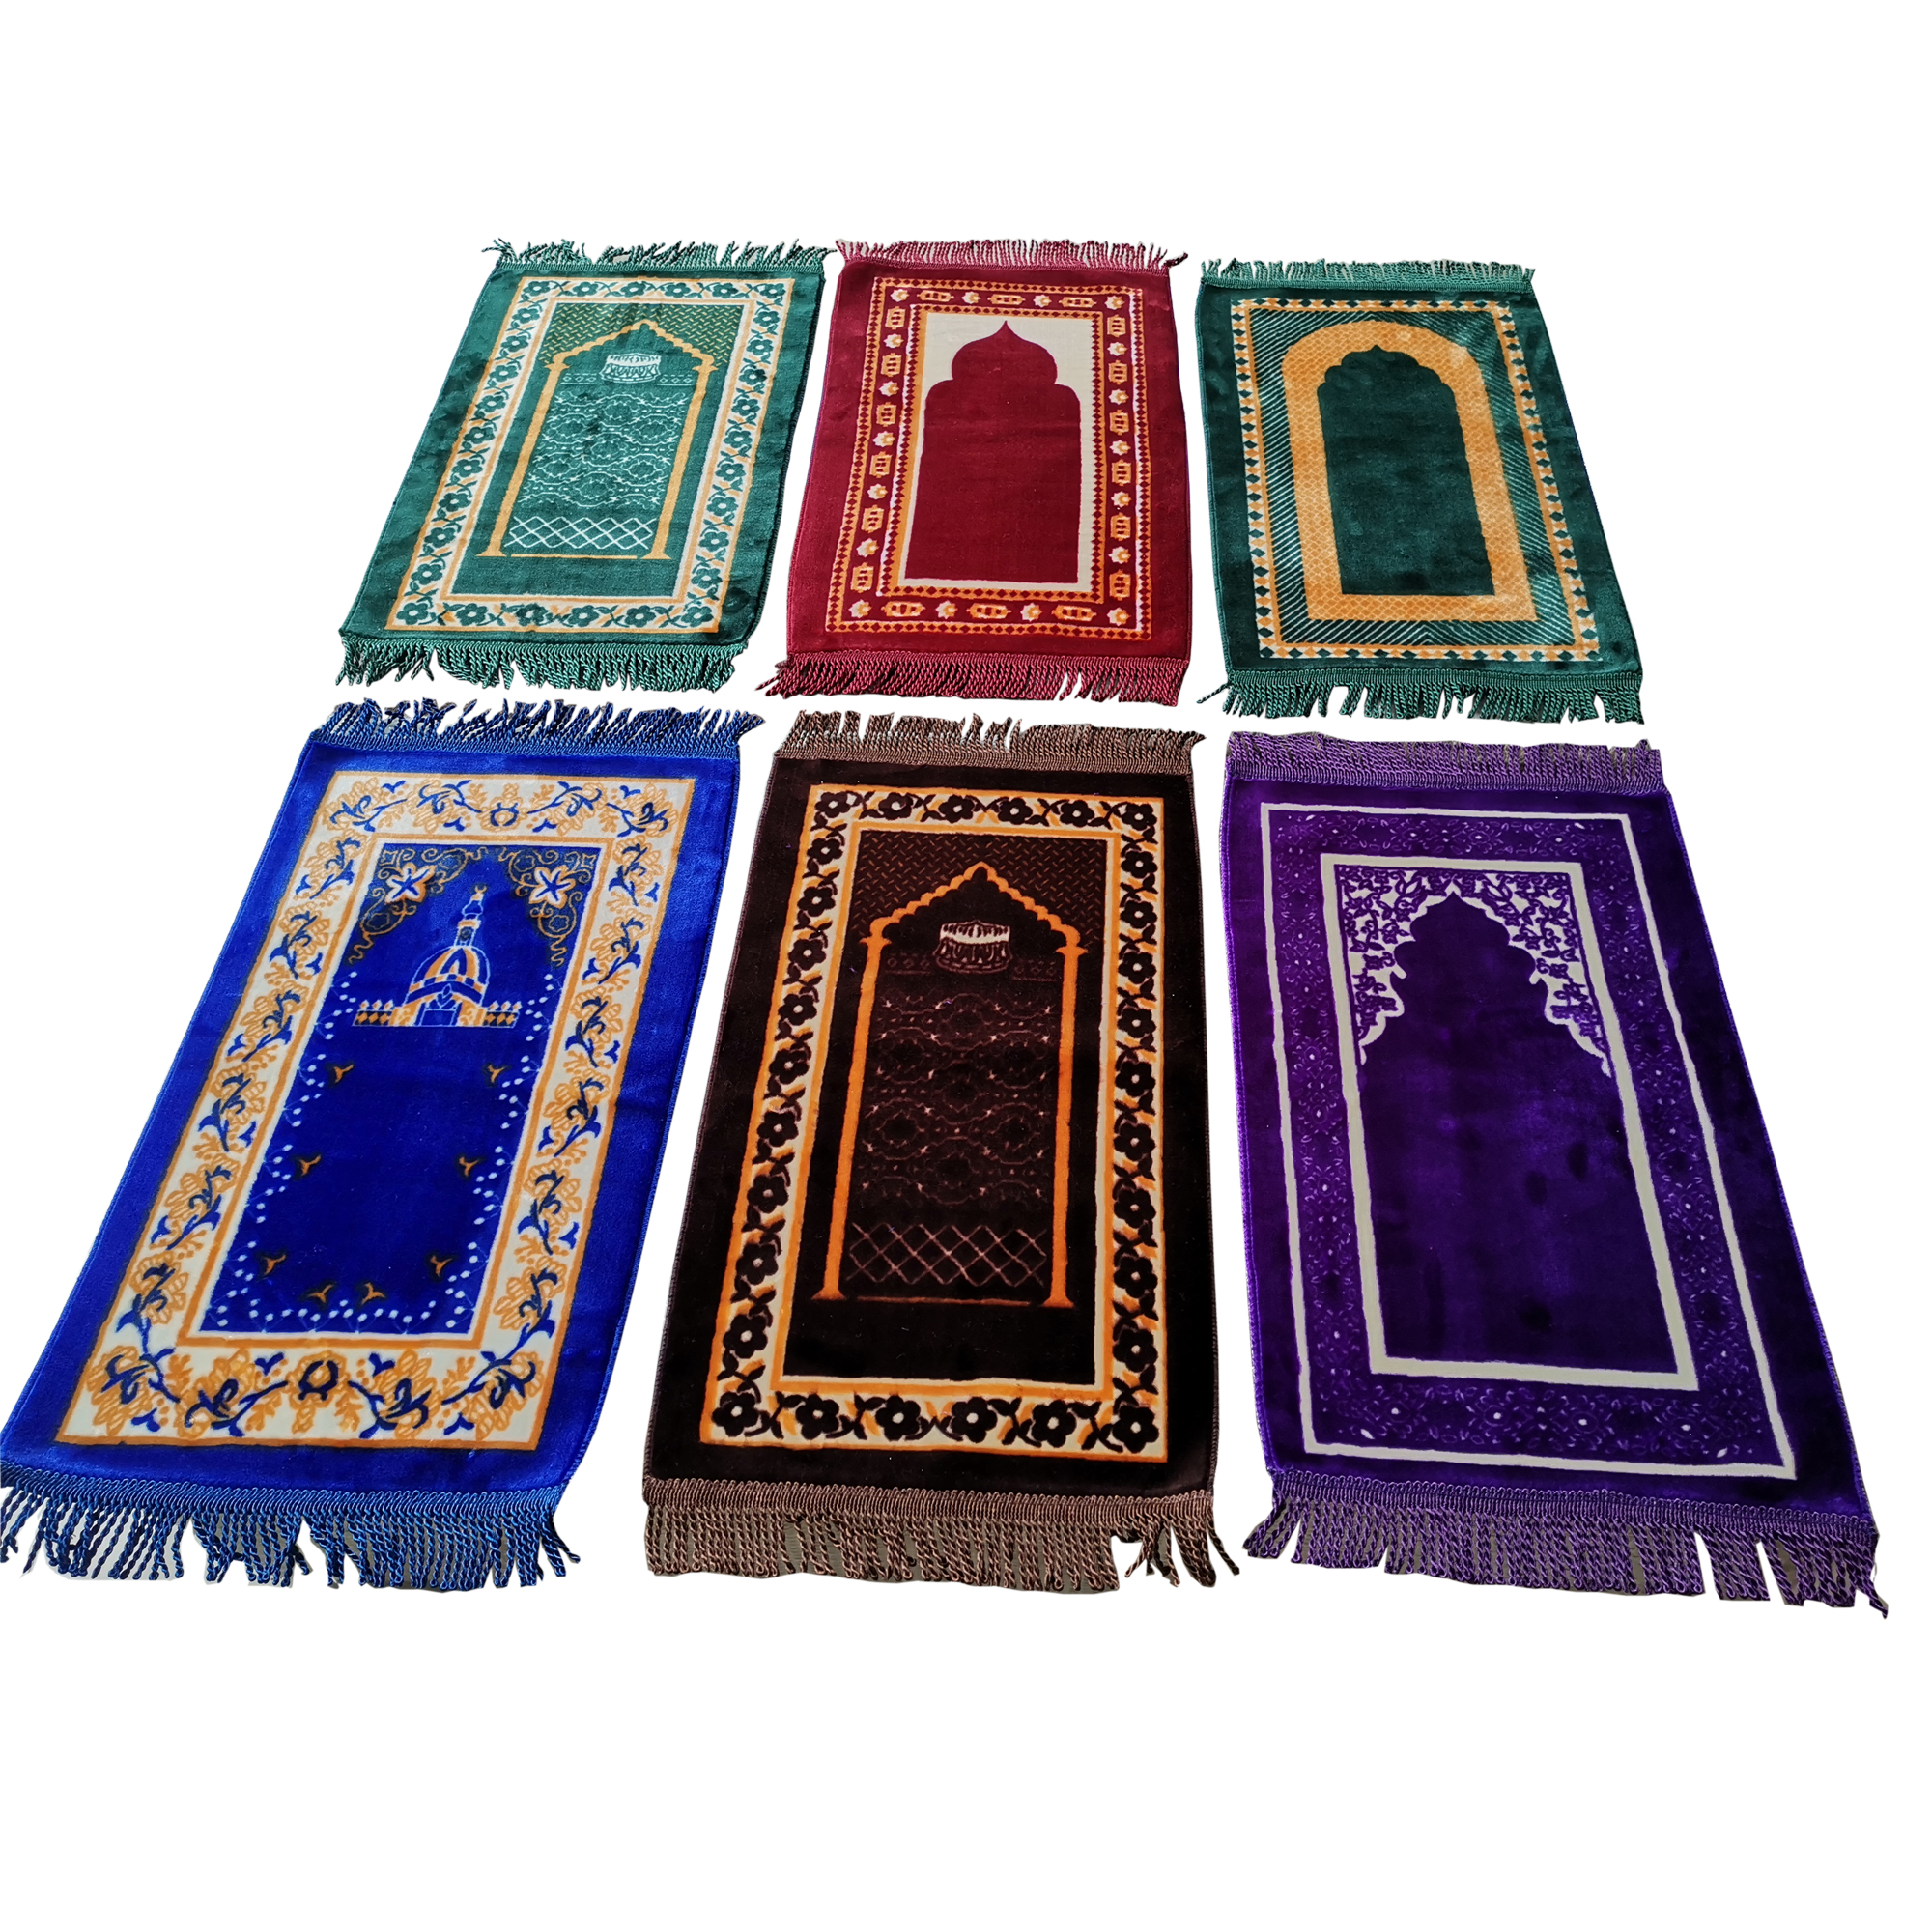 WE-WHLL Portable Muslim Prayer Rug Simply Print Polyester Braided Mat Travel Home Waterproof Blanket Mat 70x110CM